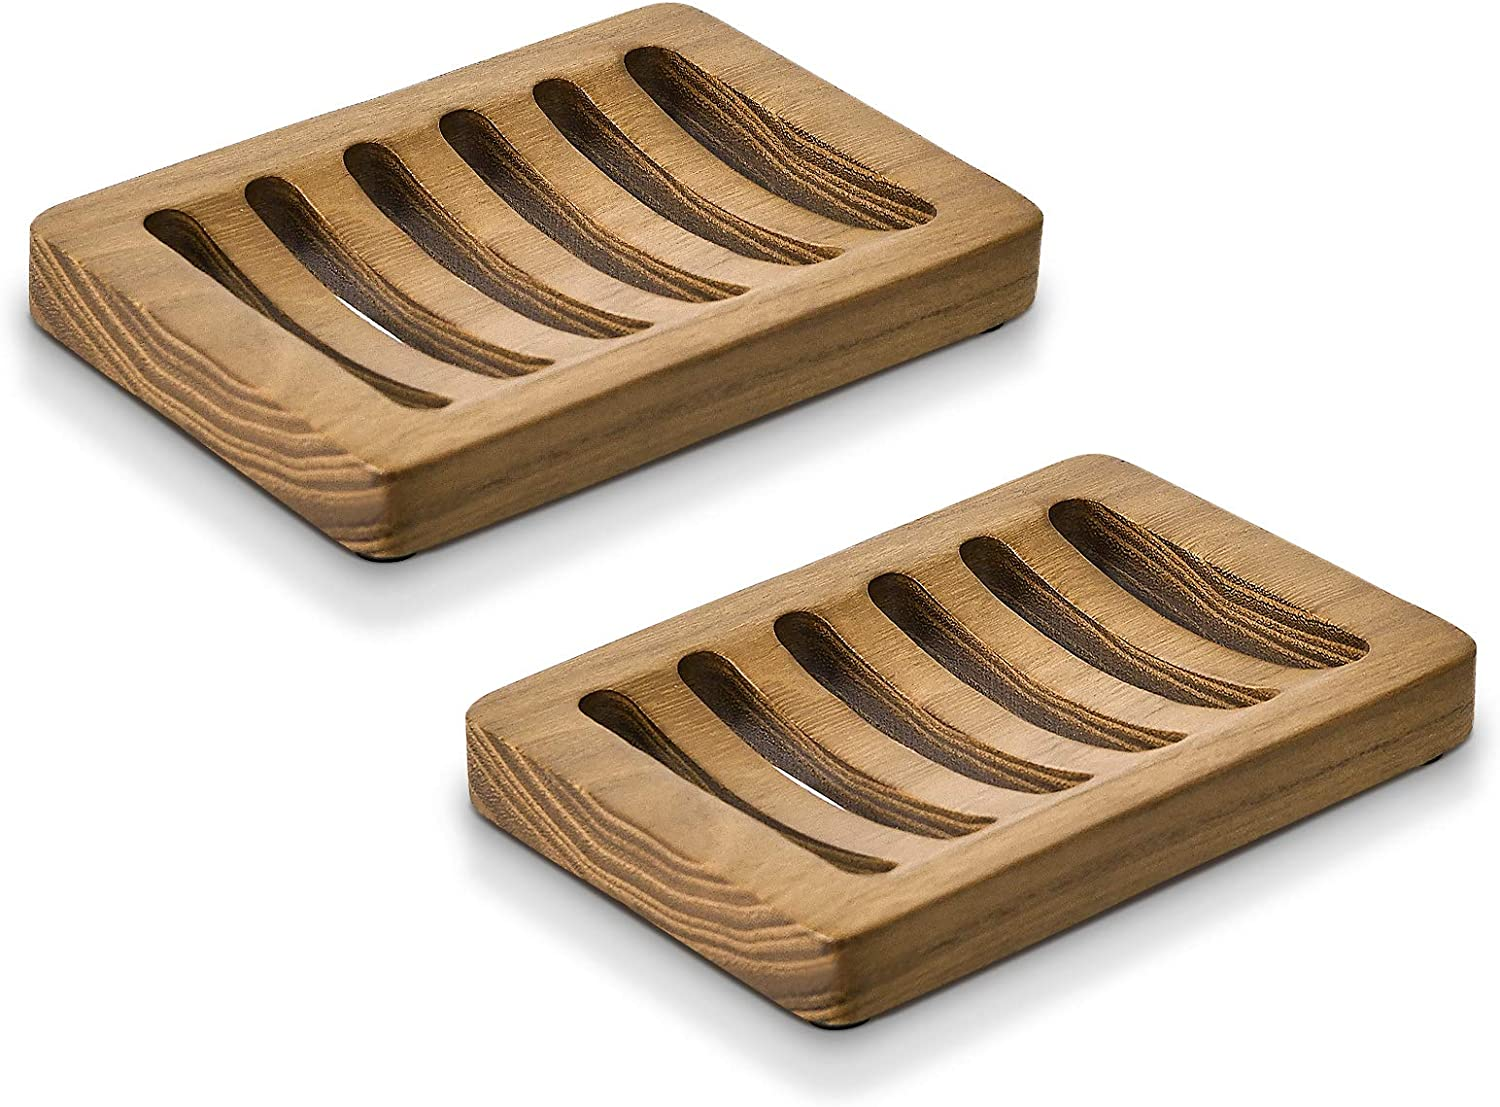 SUBEKYU 【Teak】 Wood Bathroom Soap Dish for Bar Soap, Draining Wooden Soap Holder for Shower, Soap Saver and Tray, Set of 2